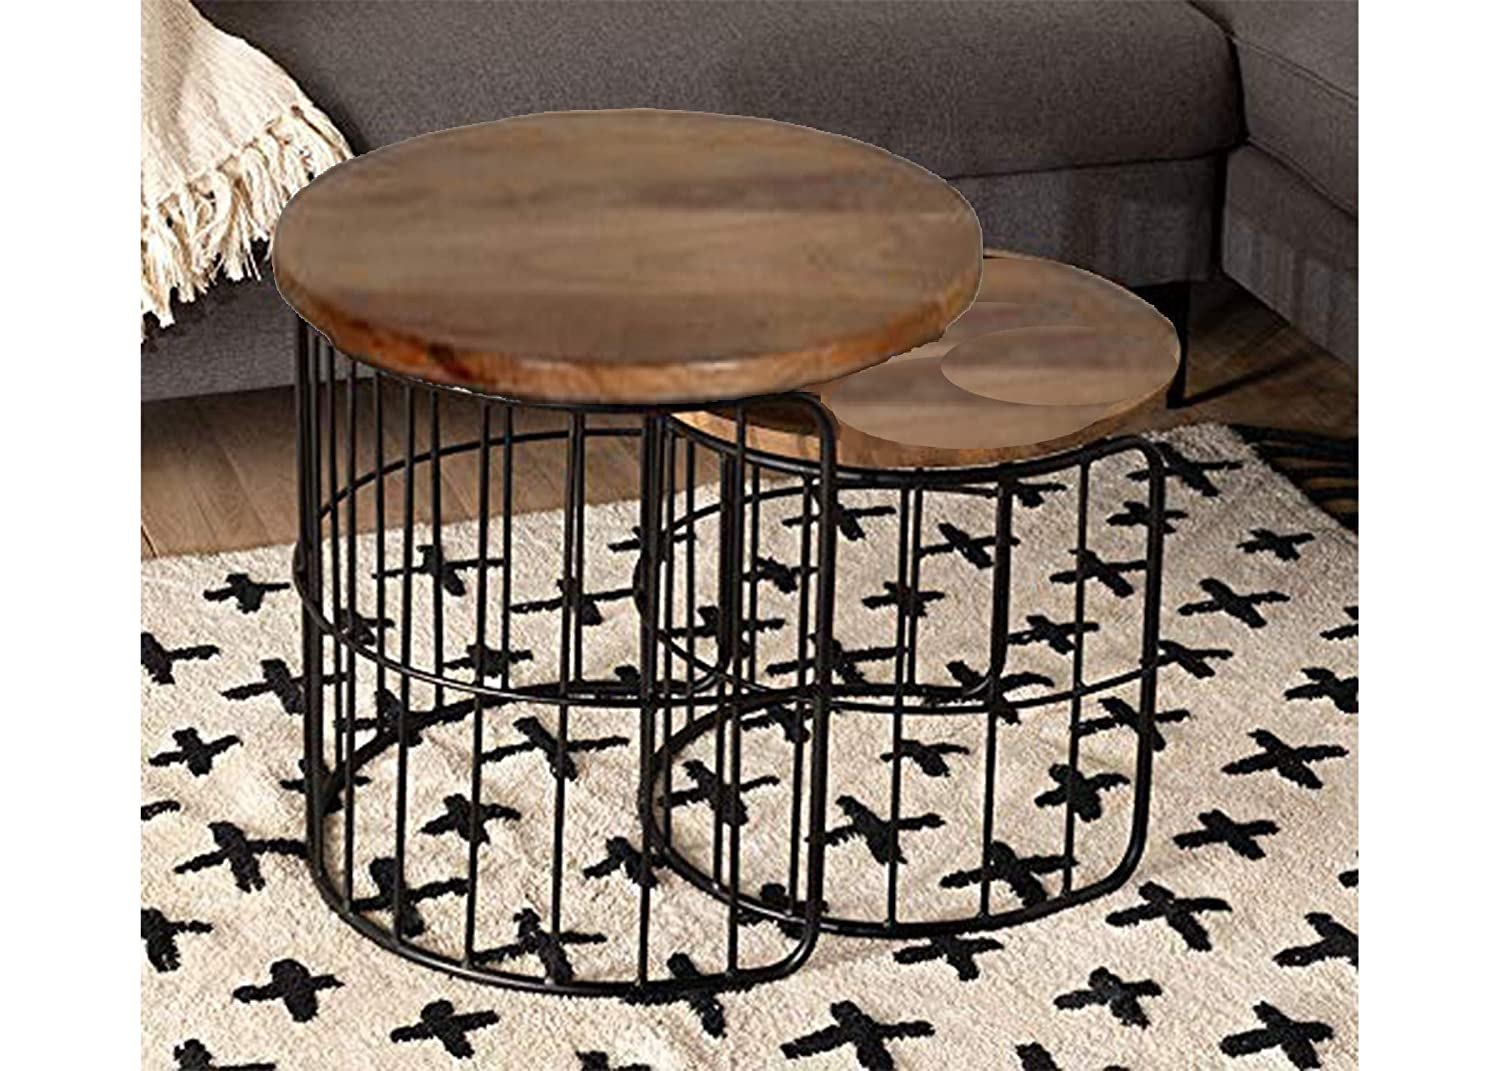 D Obair Vintage Wooden Round Coffee Table 21 21 21 Inches L W H Mango Wood Semi Gloss Brown Black Amazon In Home Kitchen